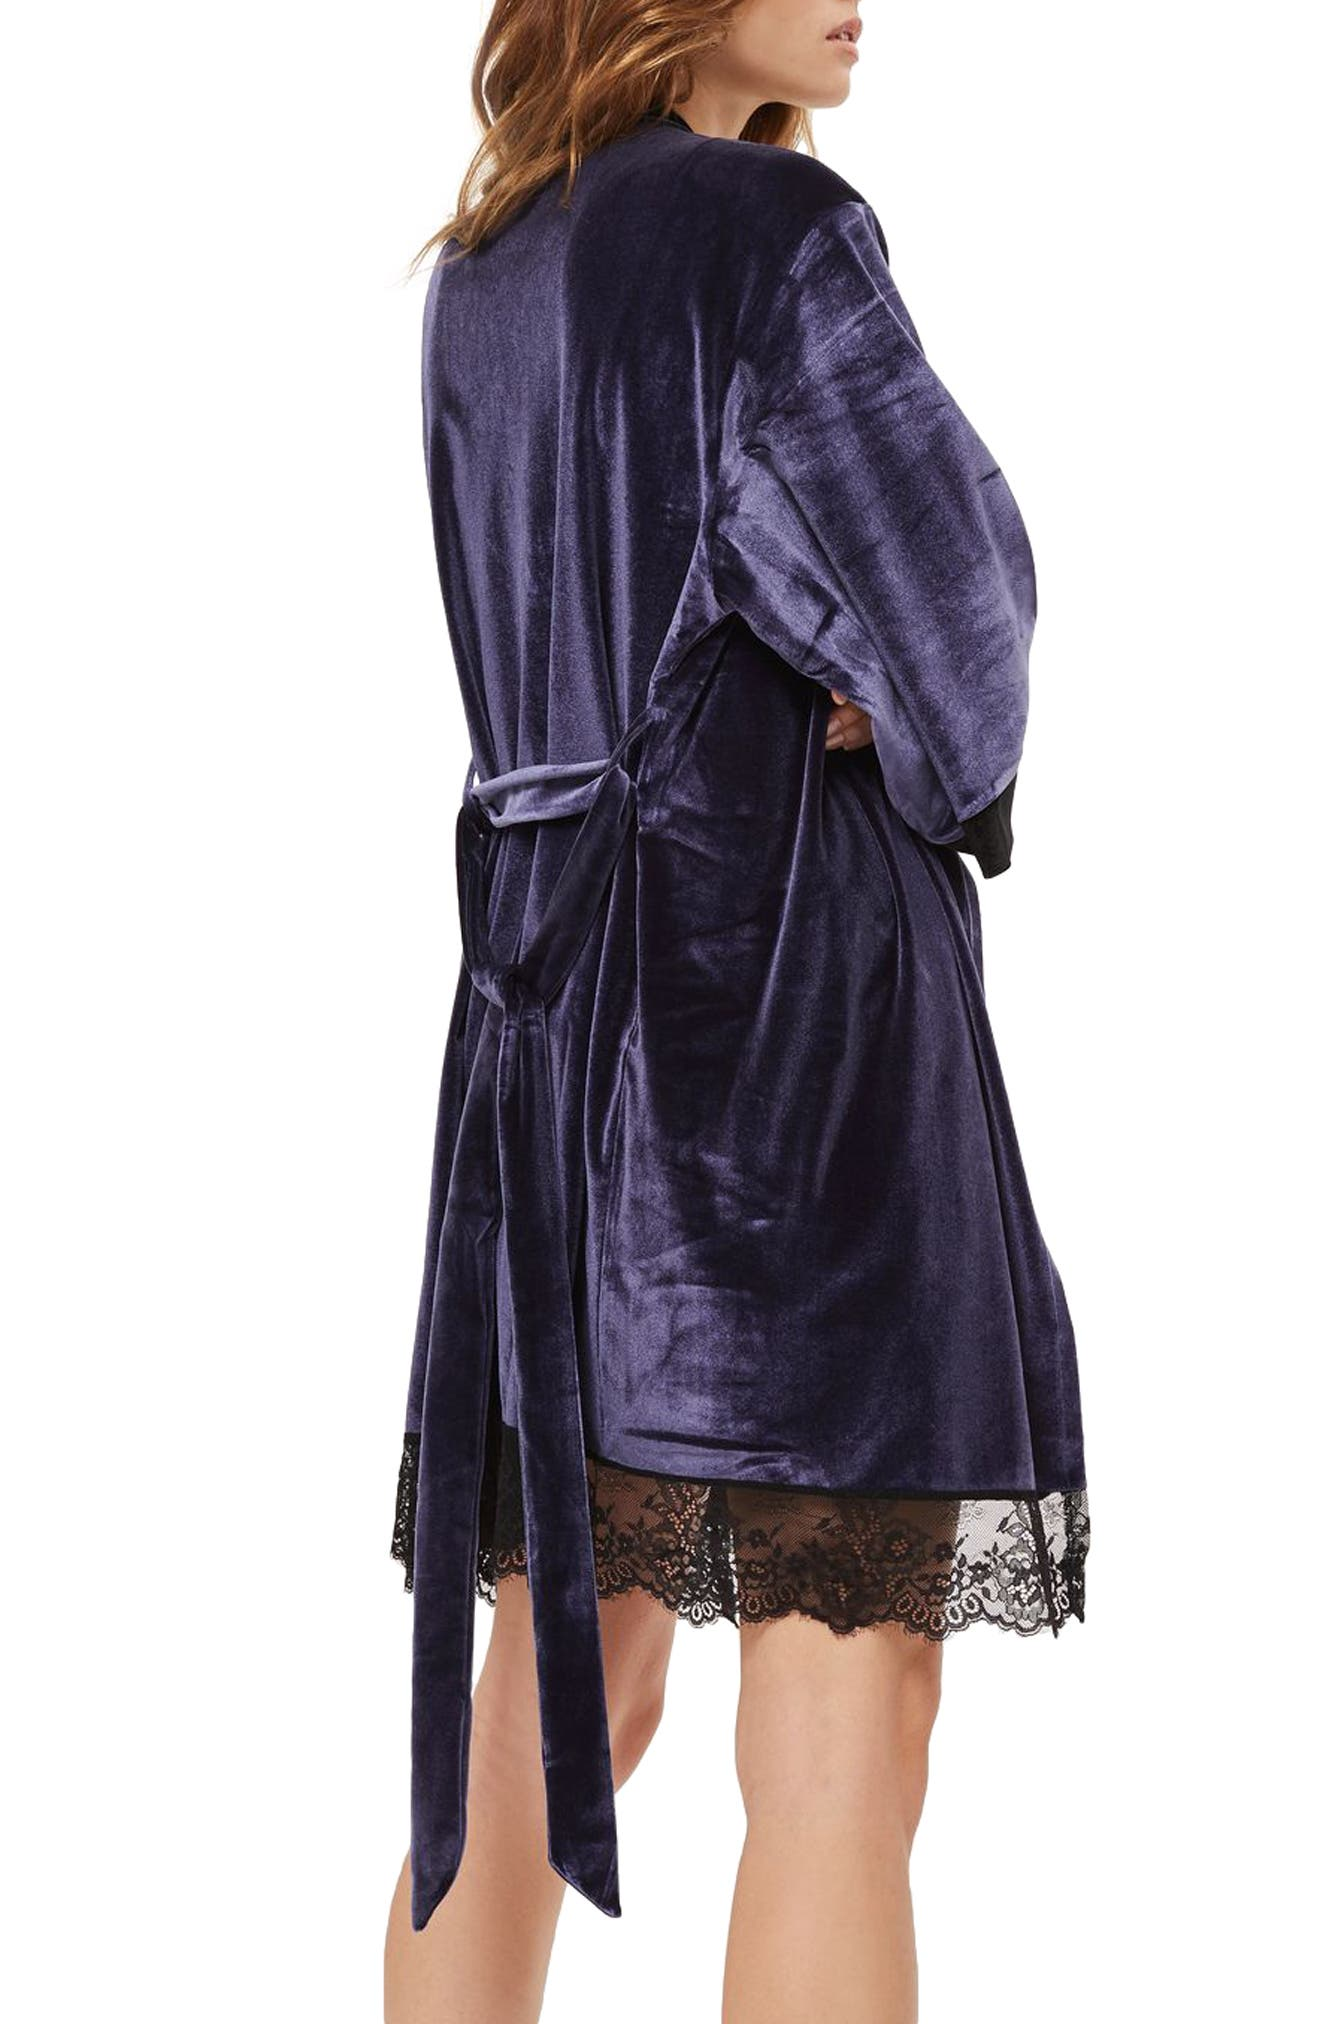 Nocturne Lace and Velvet Robe,                             Alternate thumbnail 2, color,                             Navy Blue